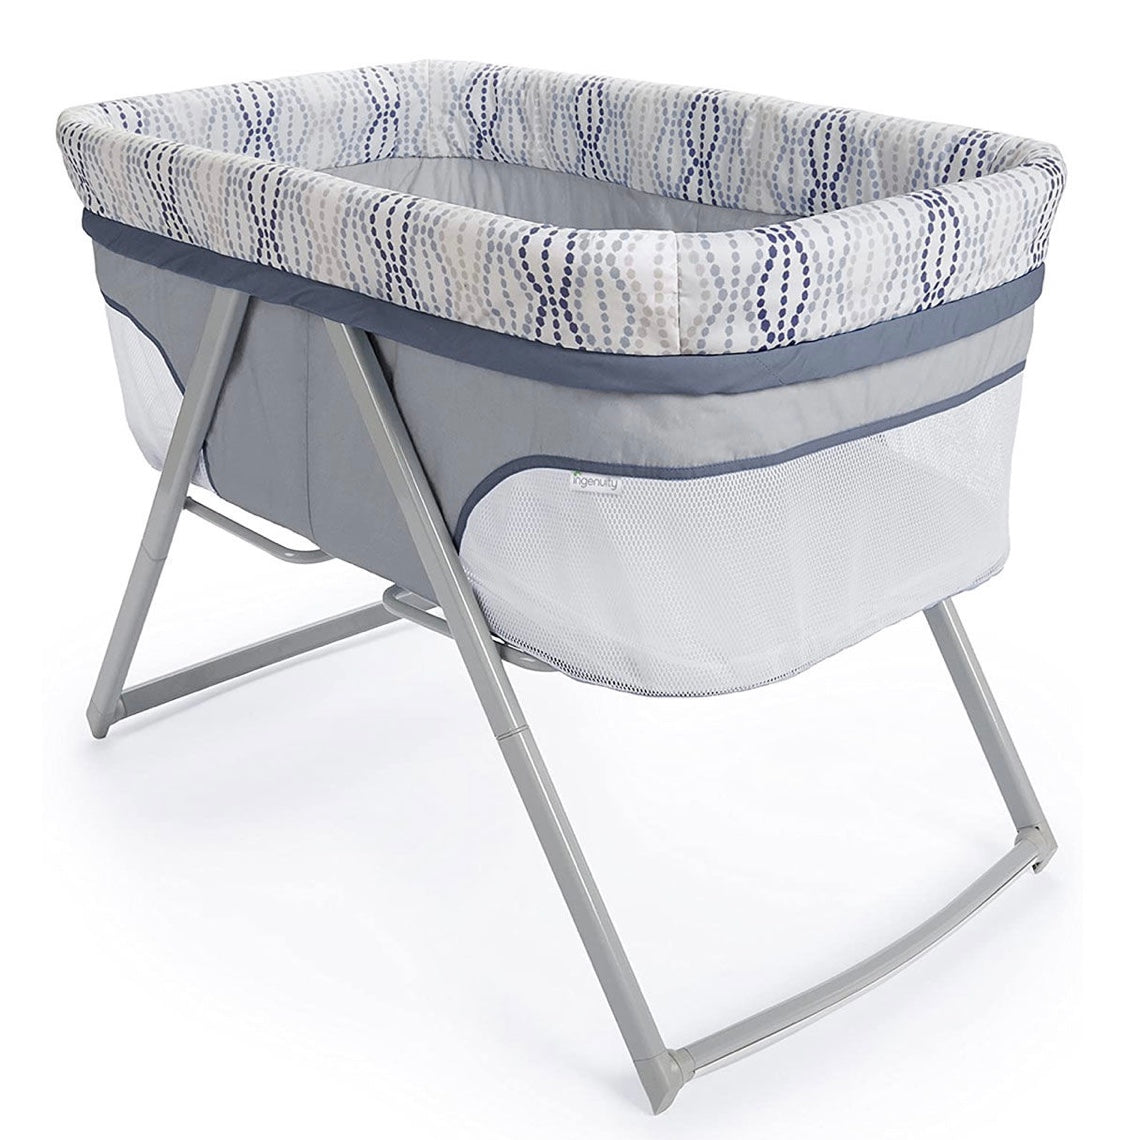 FoldAway Rocking Bassinet- Fletcher